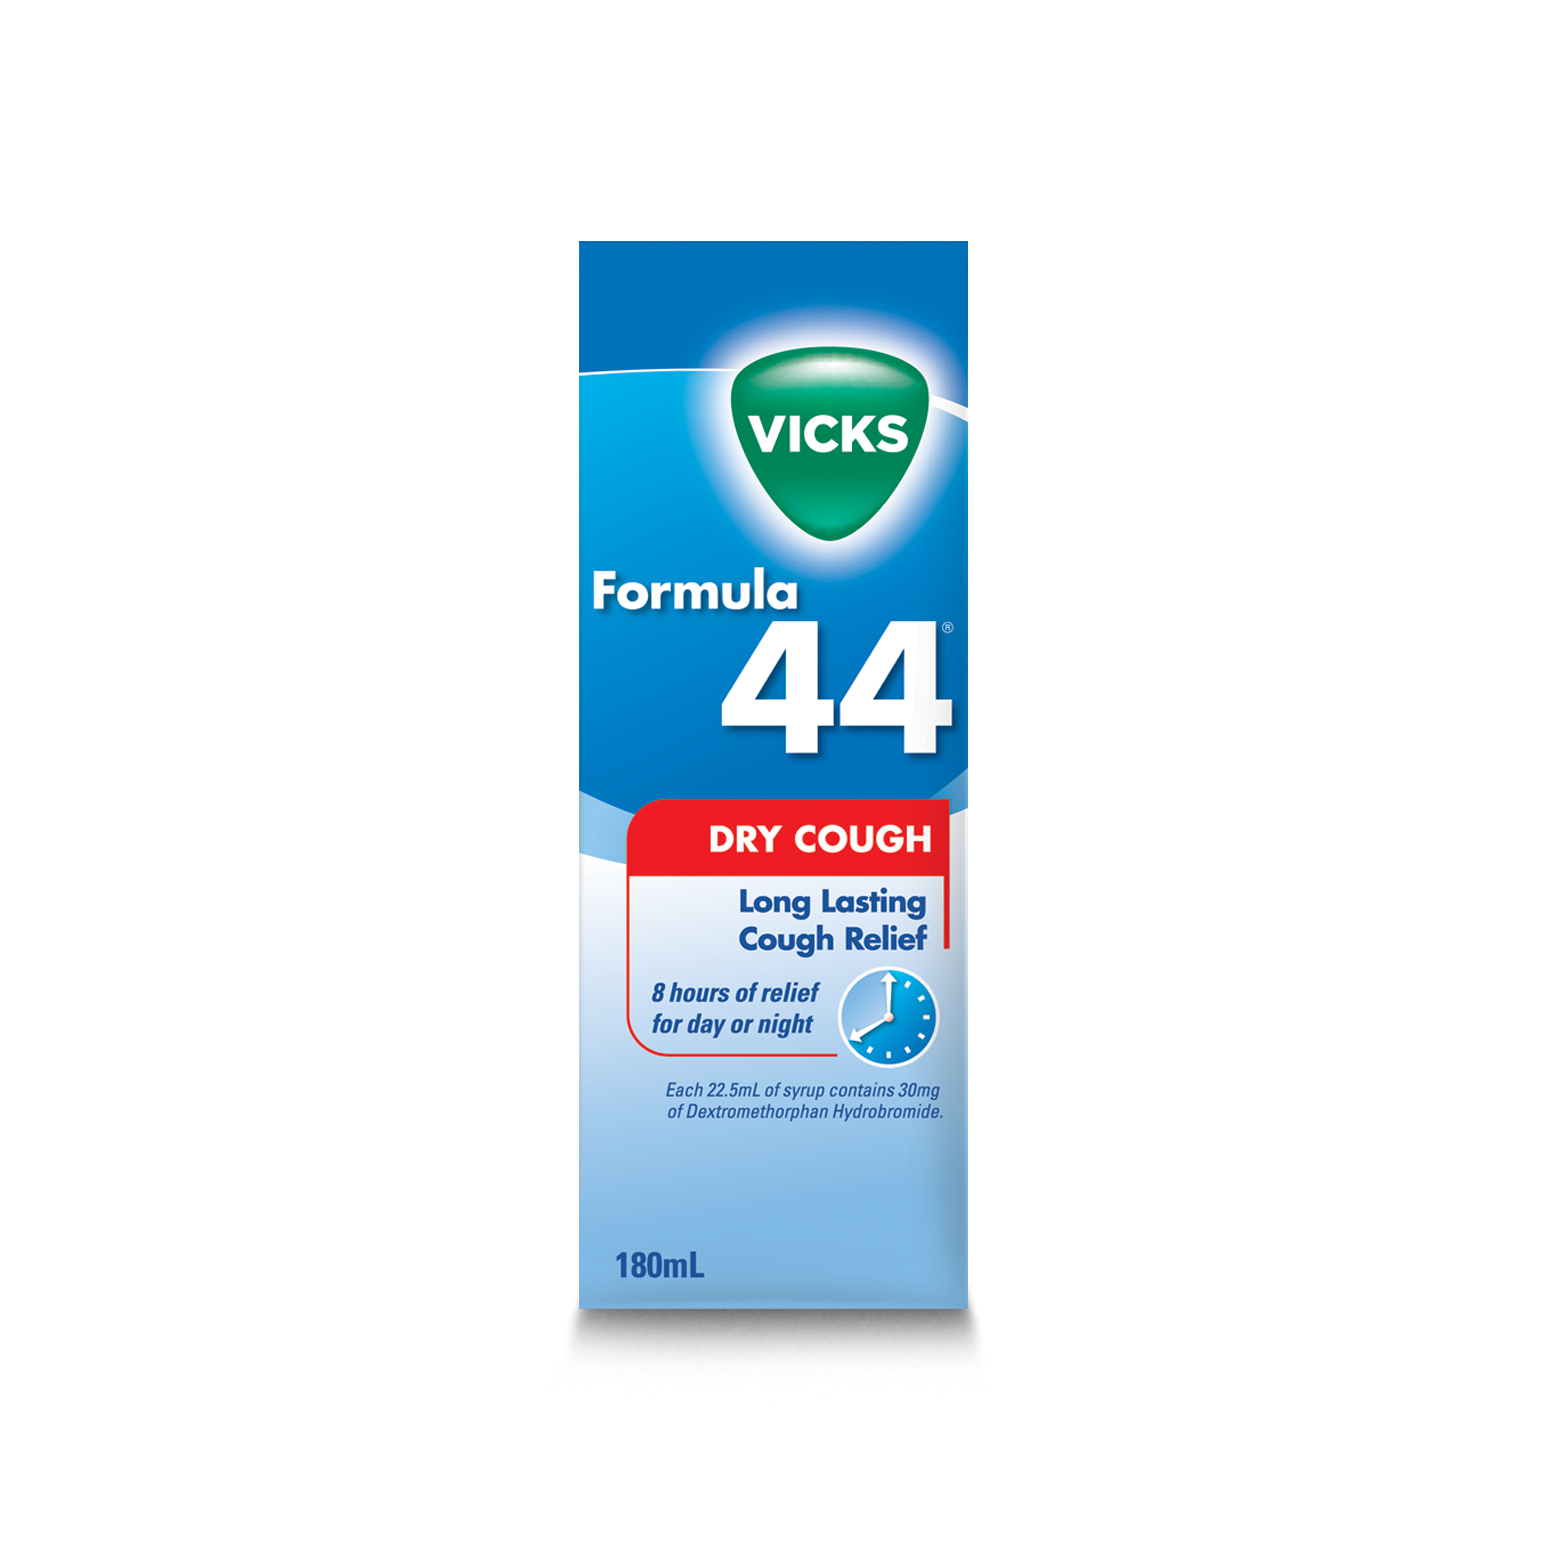 Vicks dry cough